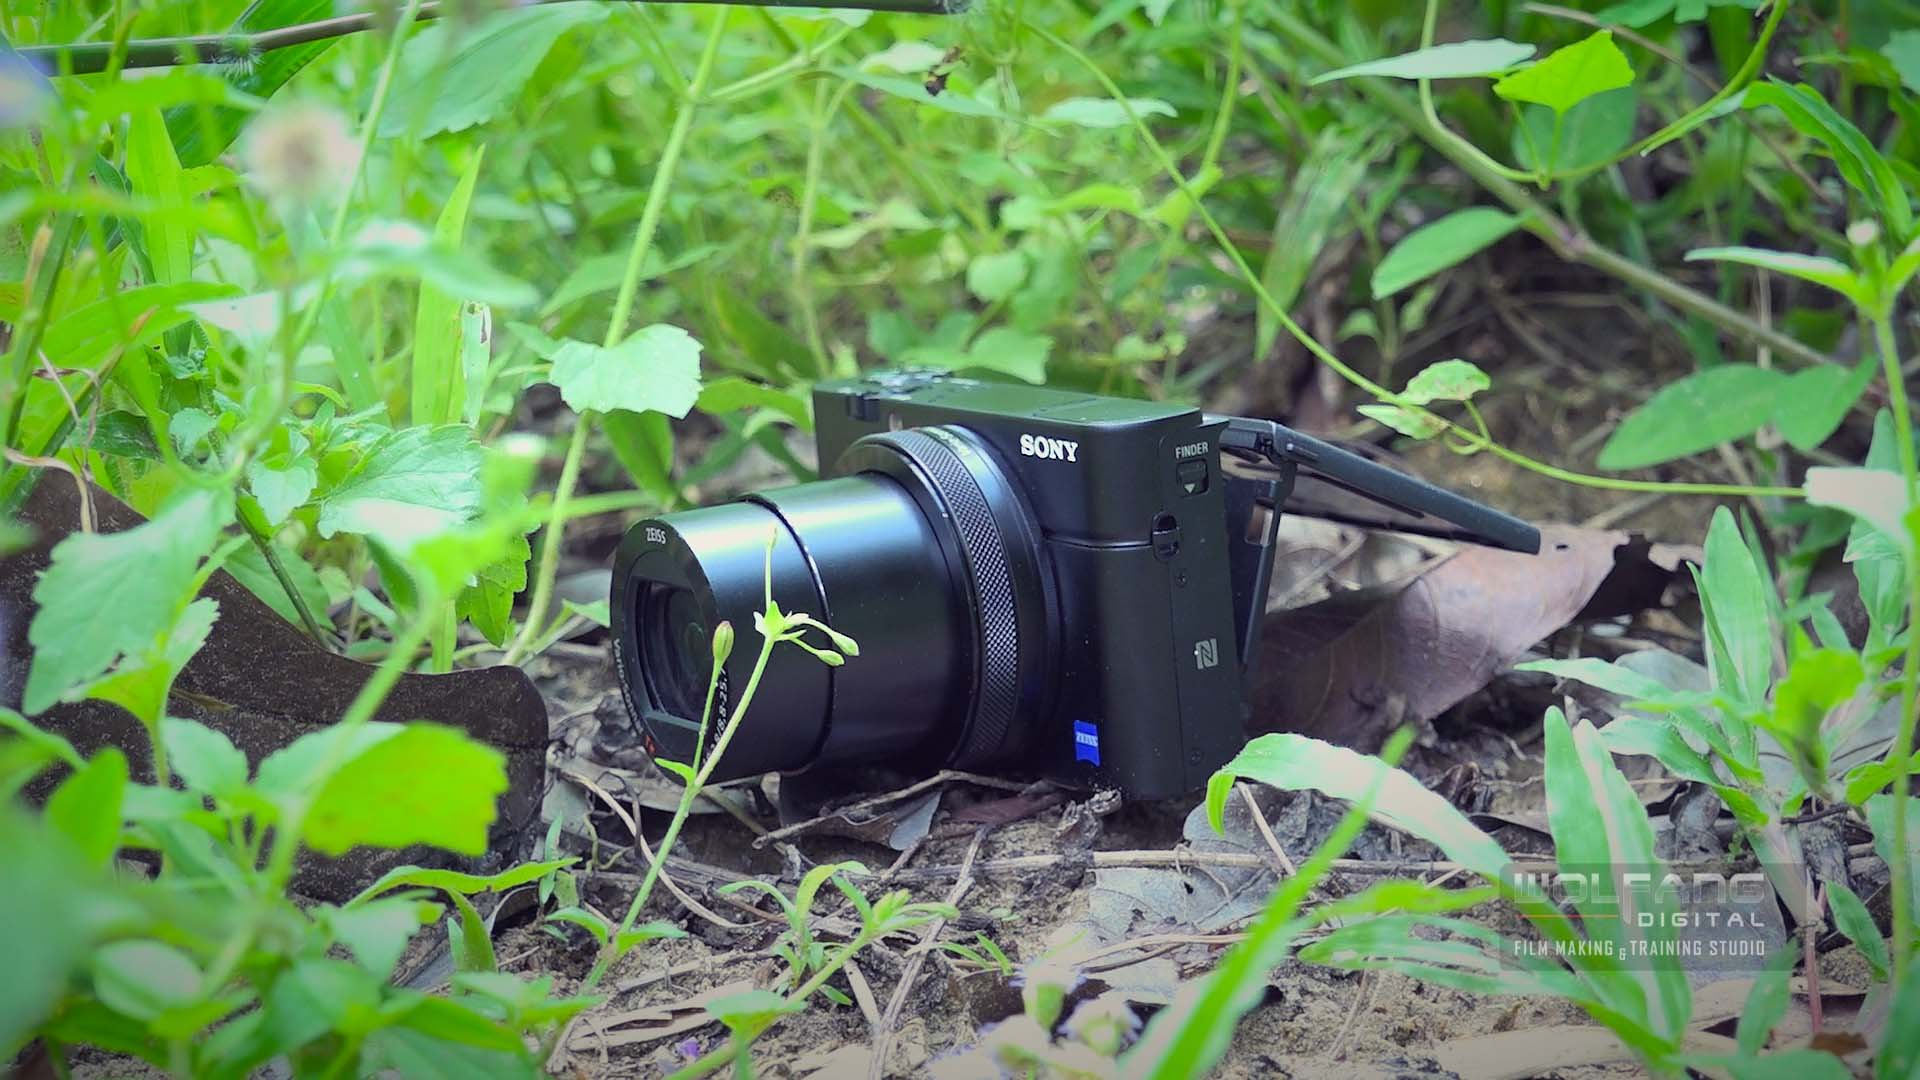 The Sony RX100 IV produced beautiful slow motion videos using the HFR mode.